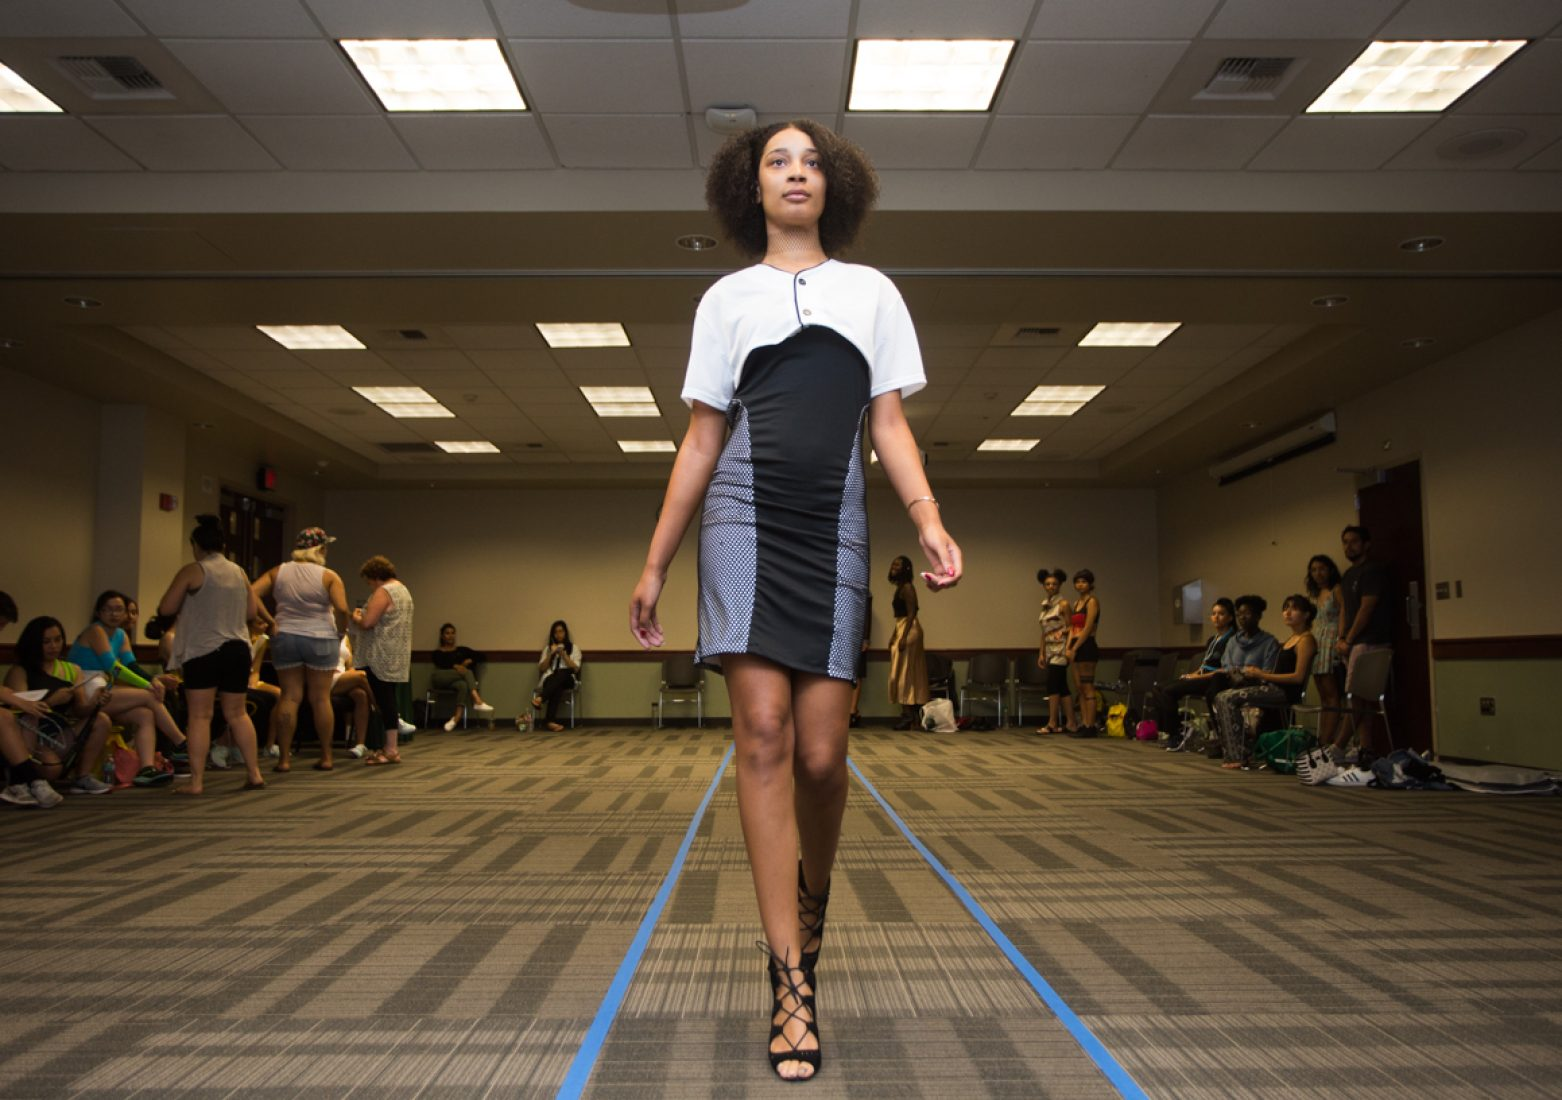 A model wears a cropped baseball jersey and a black mesh dress from designer Gabrielle Pyle during dress rehearsal in the University Union Foothill Suite on Wednesday. (Photo by Nicole Fowler)